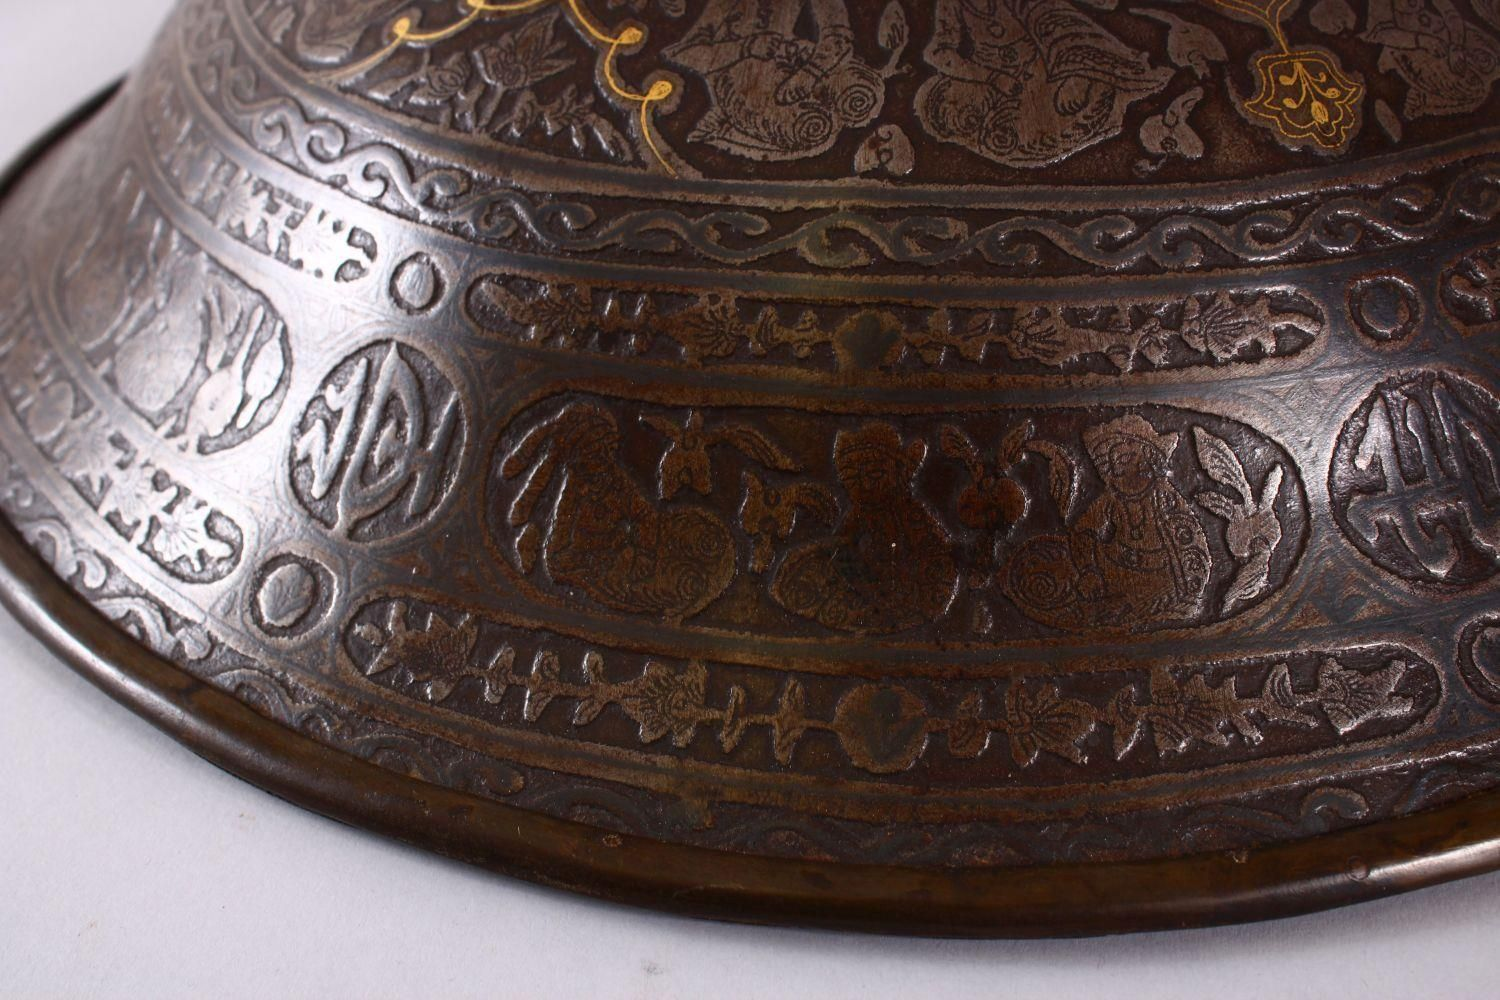 A LARGE 19TH CENTURY PERSIAN GILT DECORATED STEEL SHIELD, with carved decoration of figures, bands - Image 11 of 12